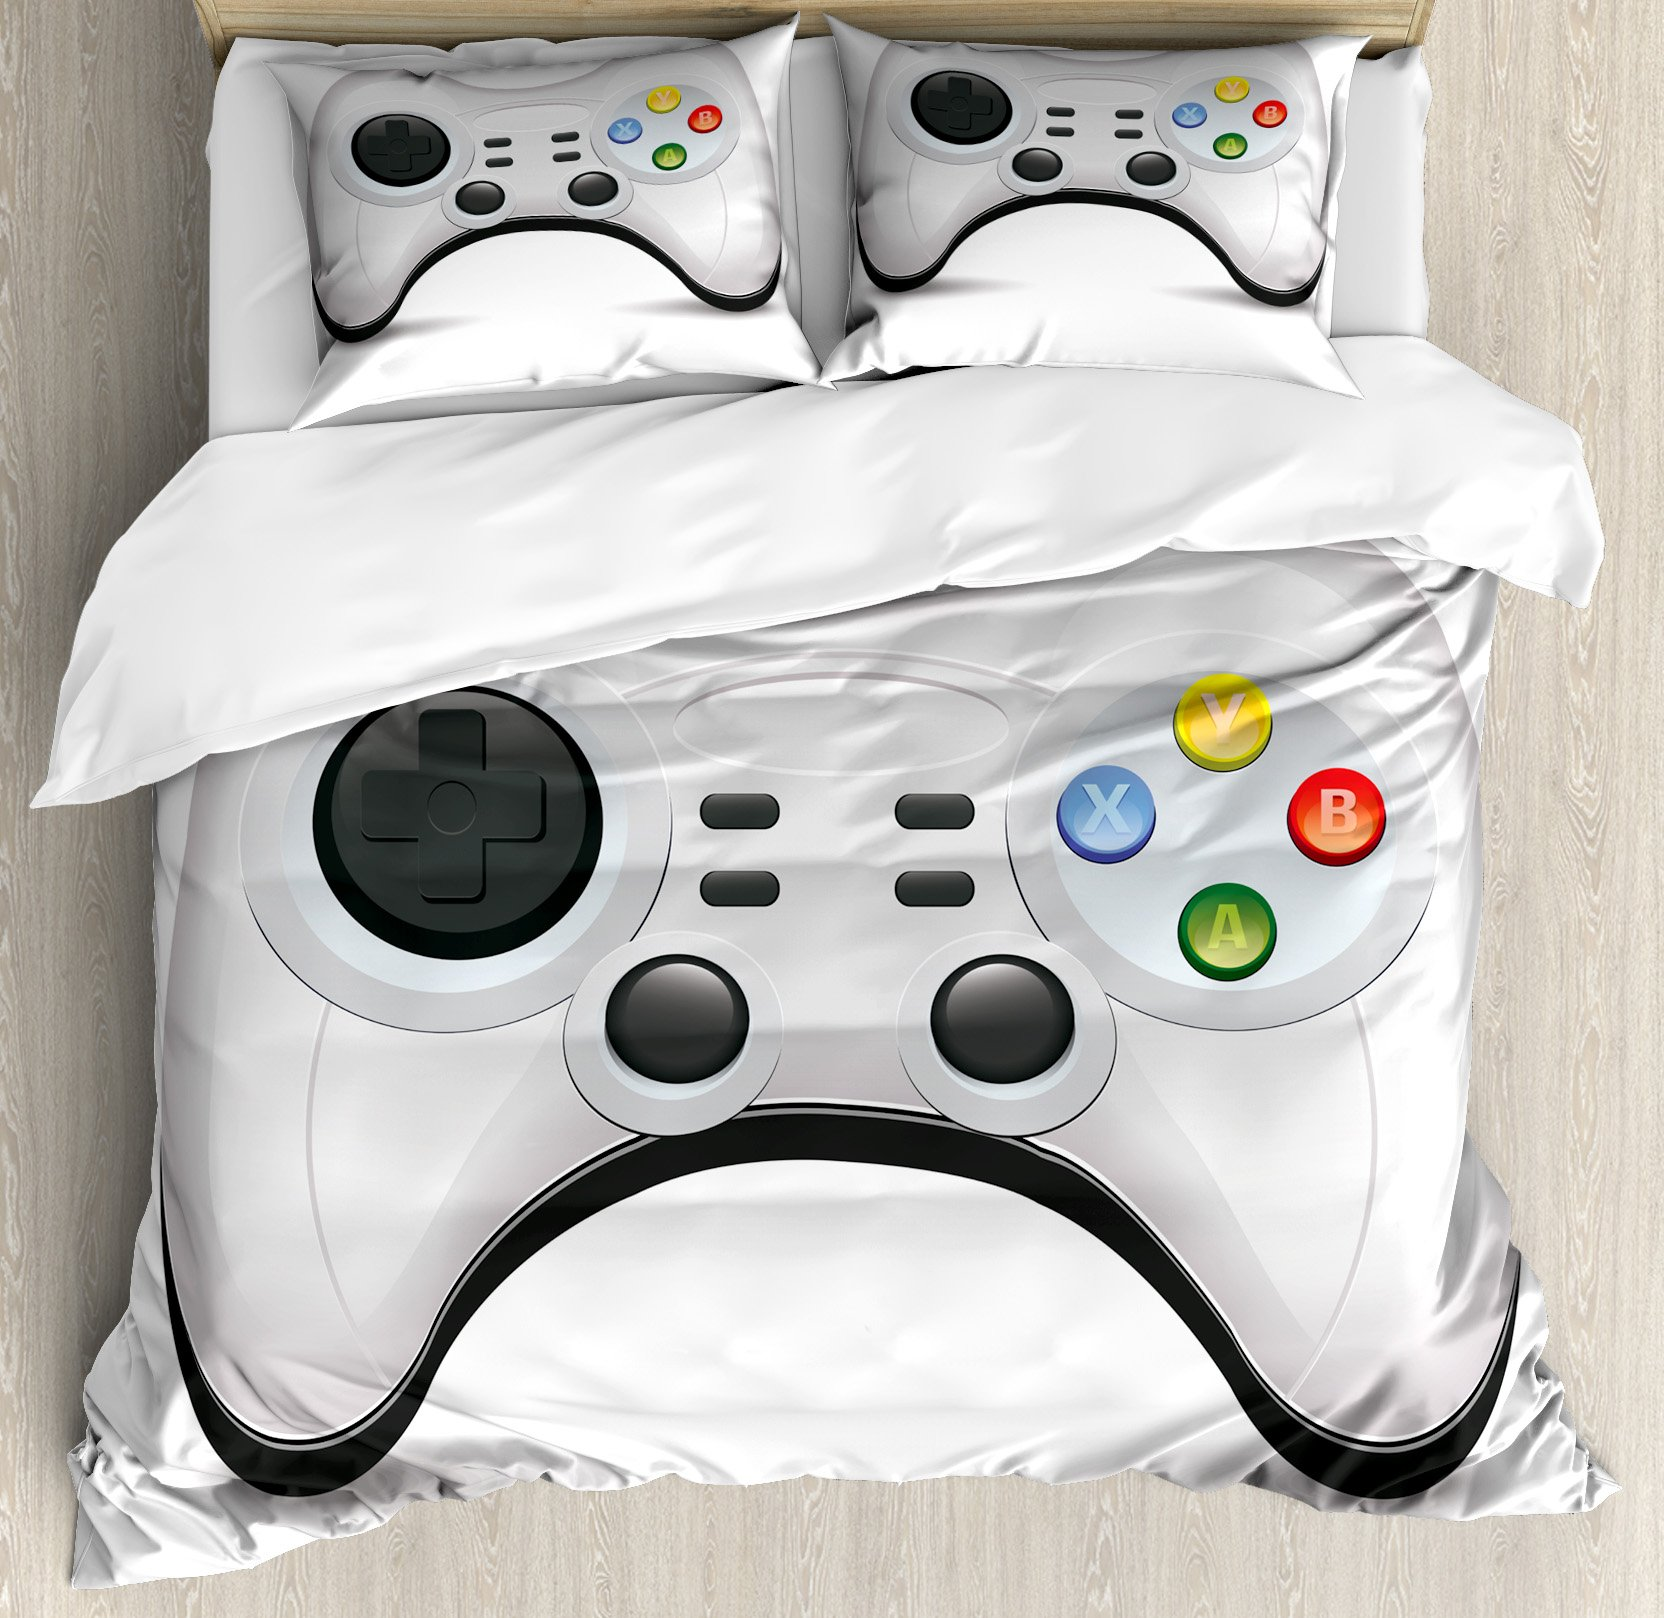 Lunarable Gamer King Size Duvet Cover Set, Modern Gamepad Concept Design with Colorful Action Buttons with Joysticks and D-Pad, Decorative 3 Piece Bedding Set with 2 Pillow Shams, Multicolor